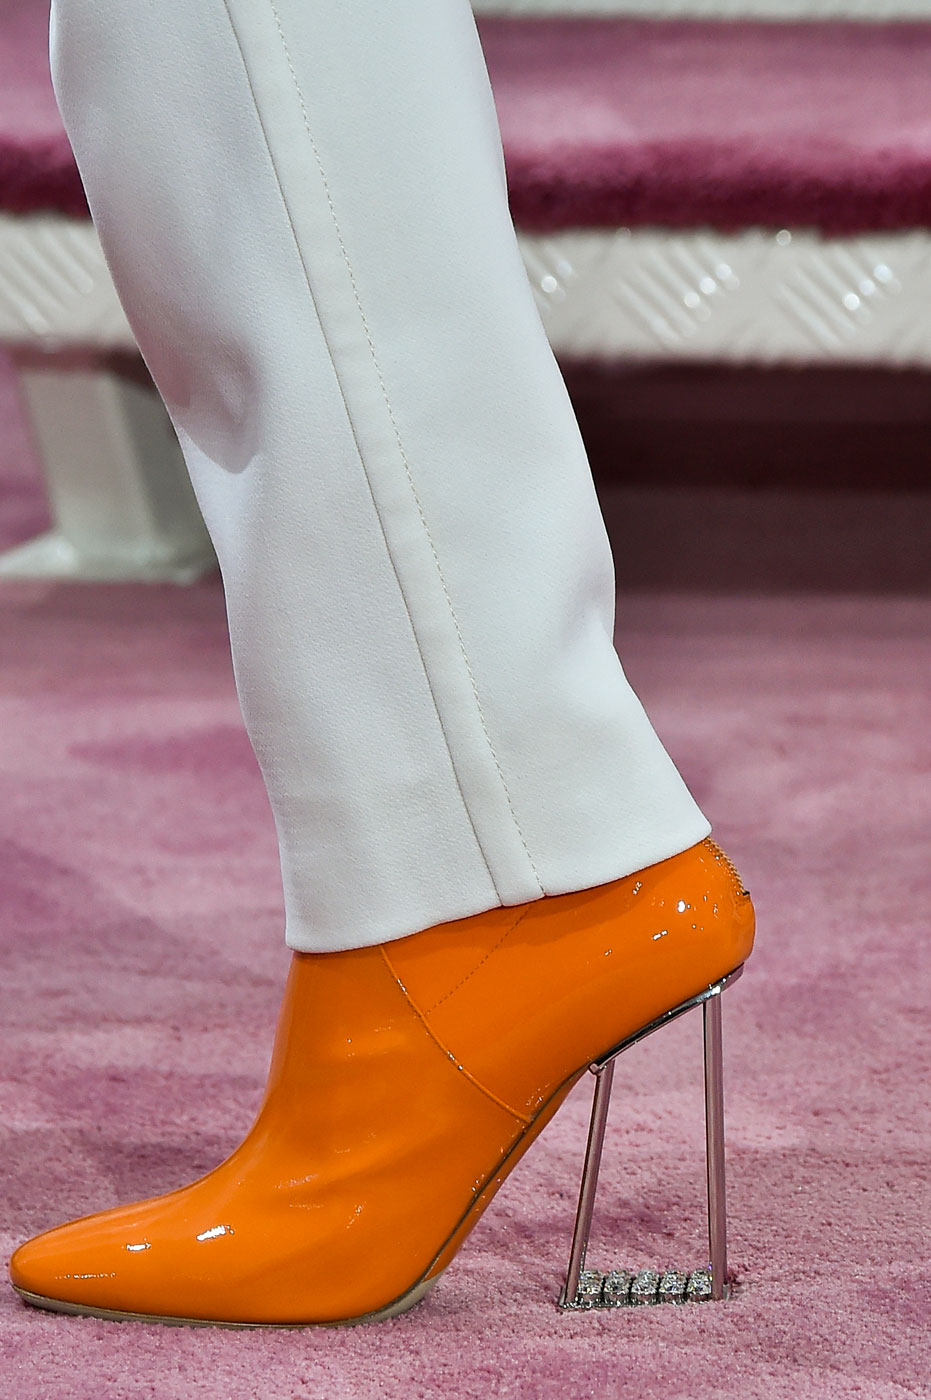 Christian-Dior-fashion-runway-show-close-ups-haute-couture-paris-spring-summer-2015-the-impression-133